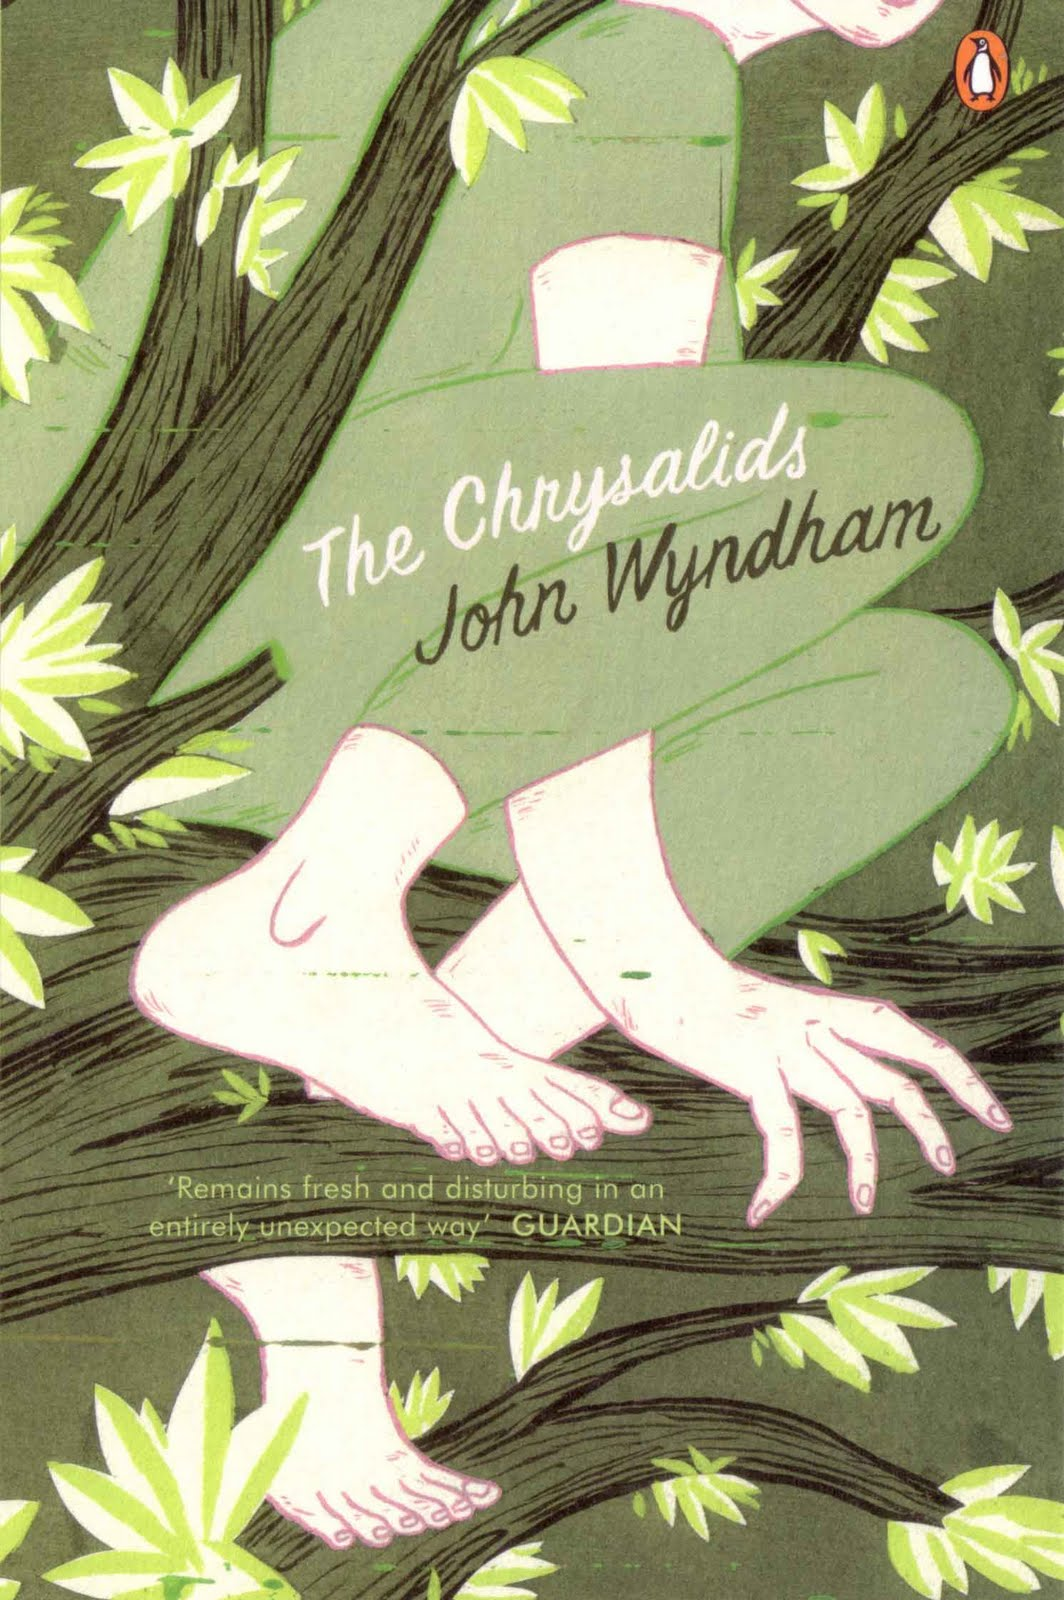 The Chrysalids - John Wyndham